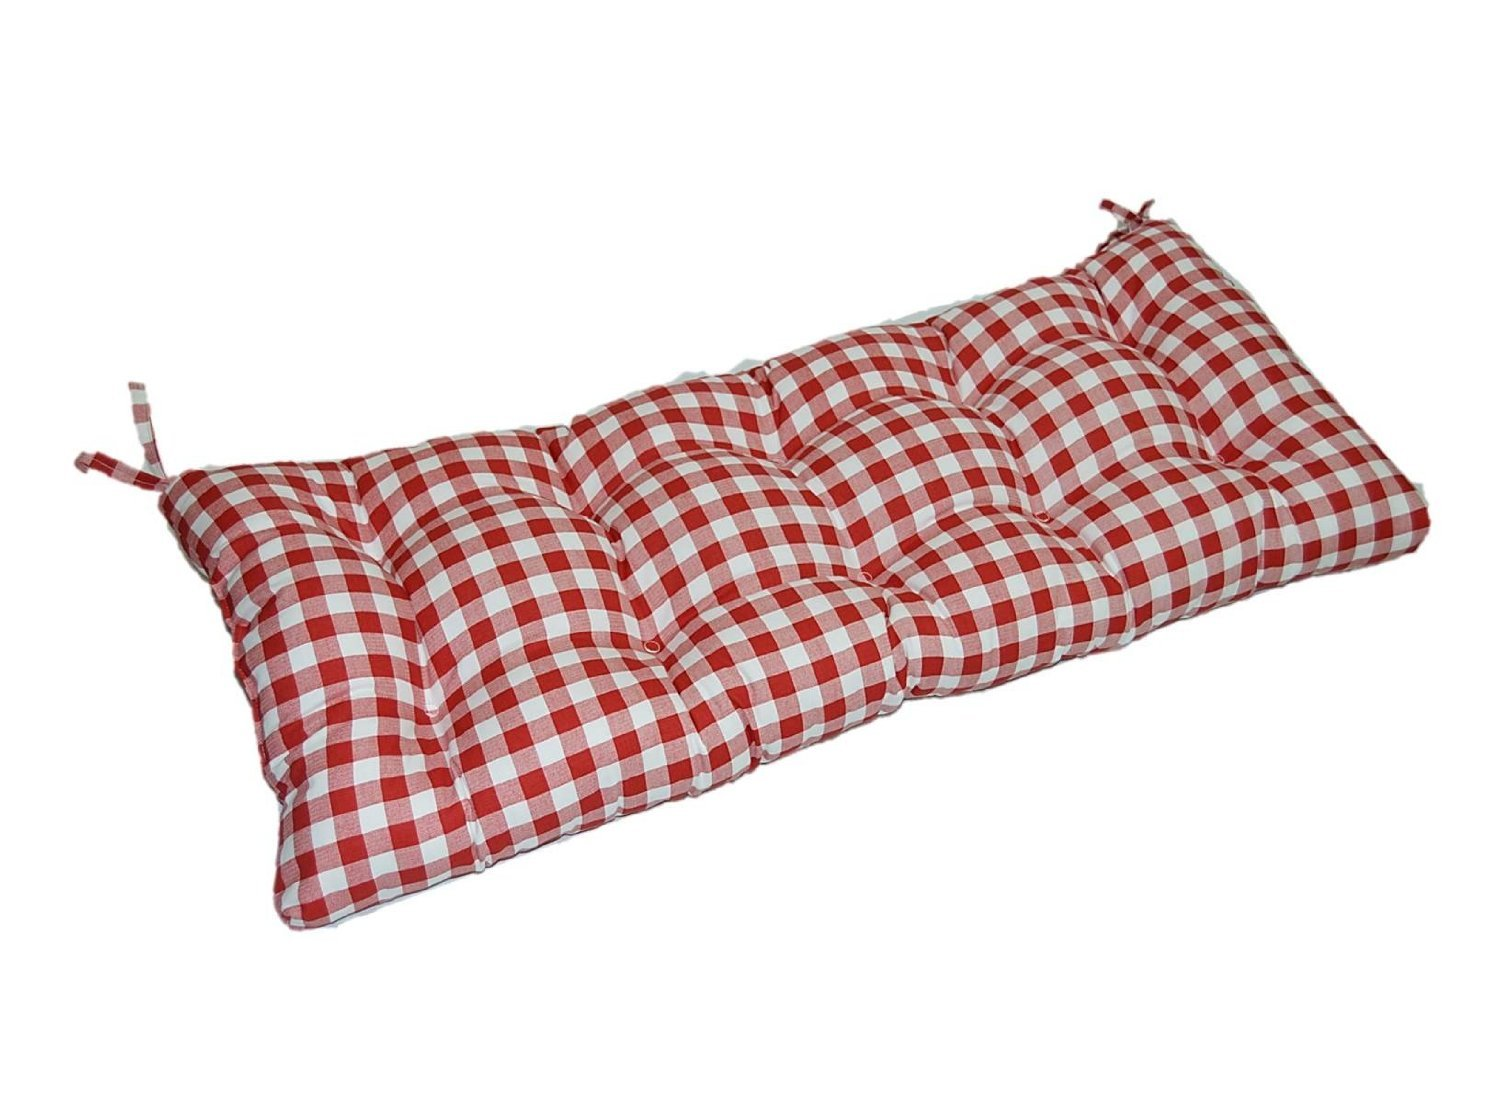 Red and White Plaid / Country Check Checkerboard Indoor Cotton Tufted Cushion with Ties for Bench, Swing, Glider - Choose Size (45'' x 18'')